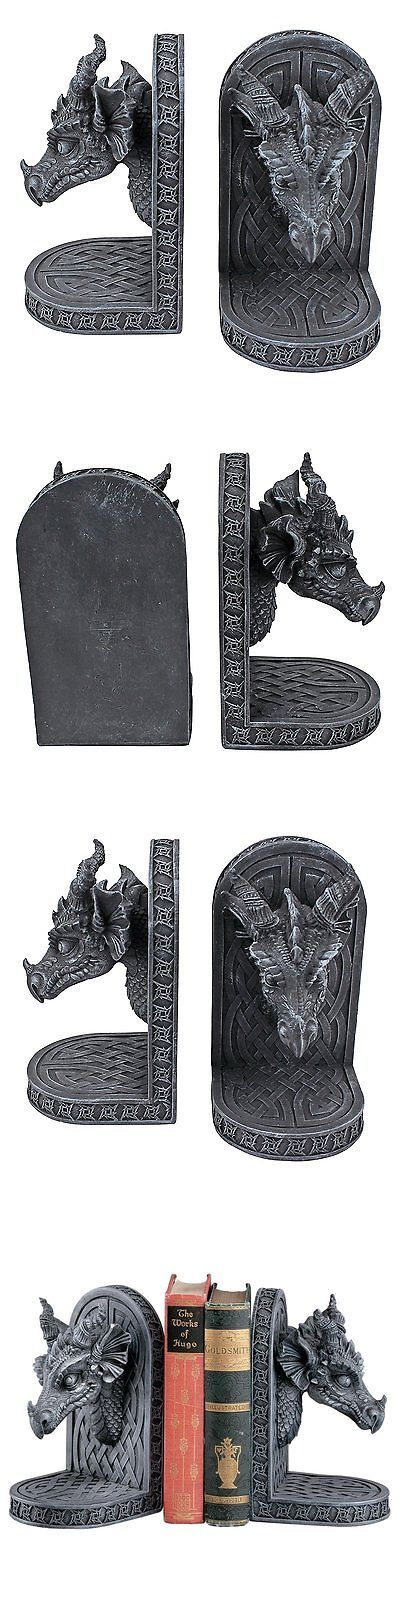 Bookends 20551: Design Toscano Gray Friar Dragon Bookends -> BUY IT NOW ONLY: $48.63 on eBay!